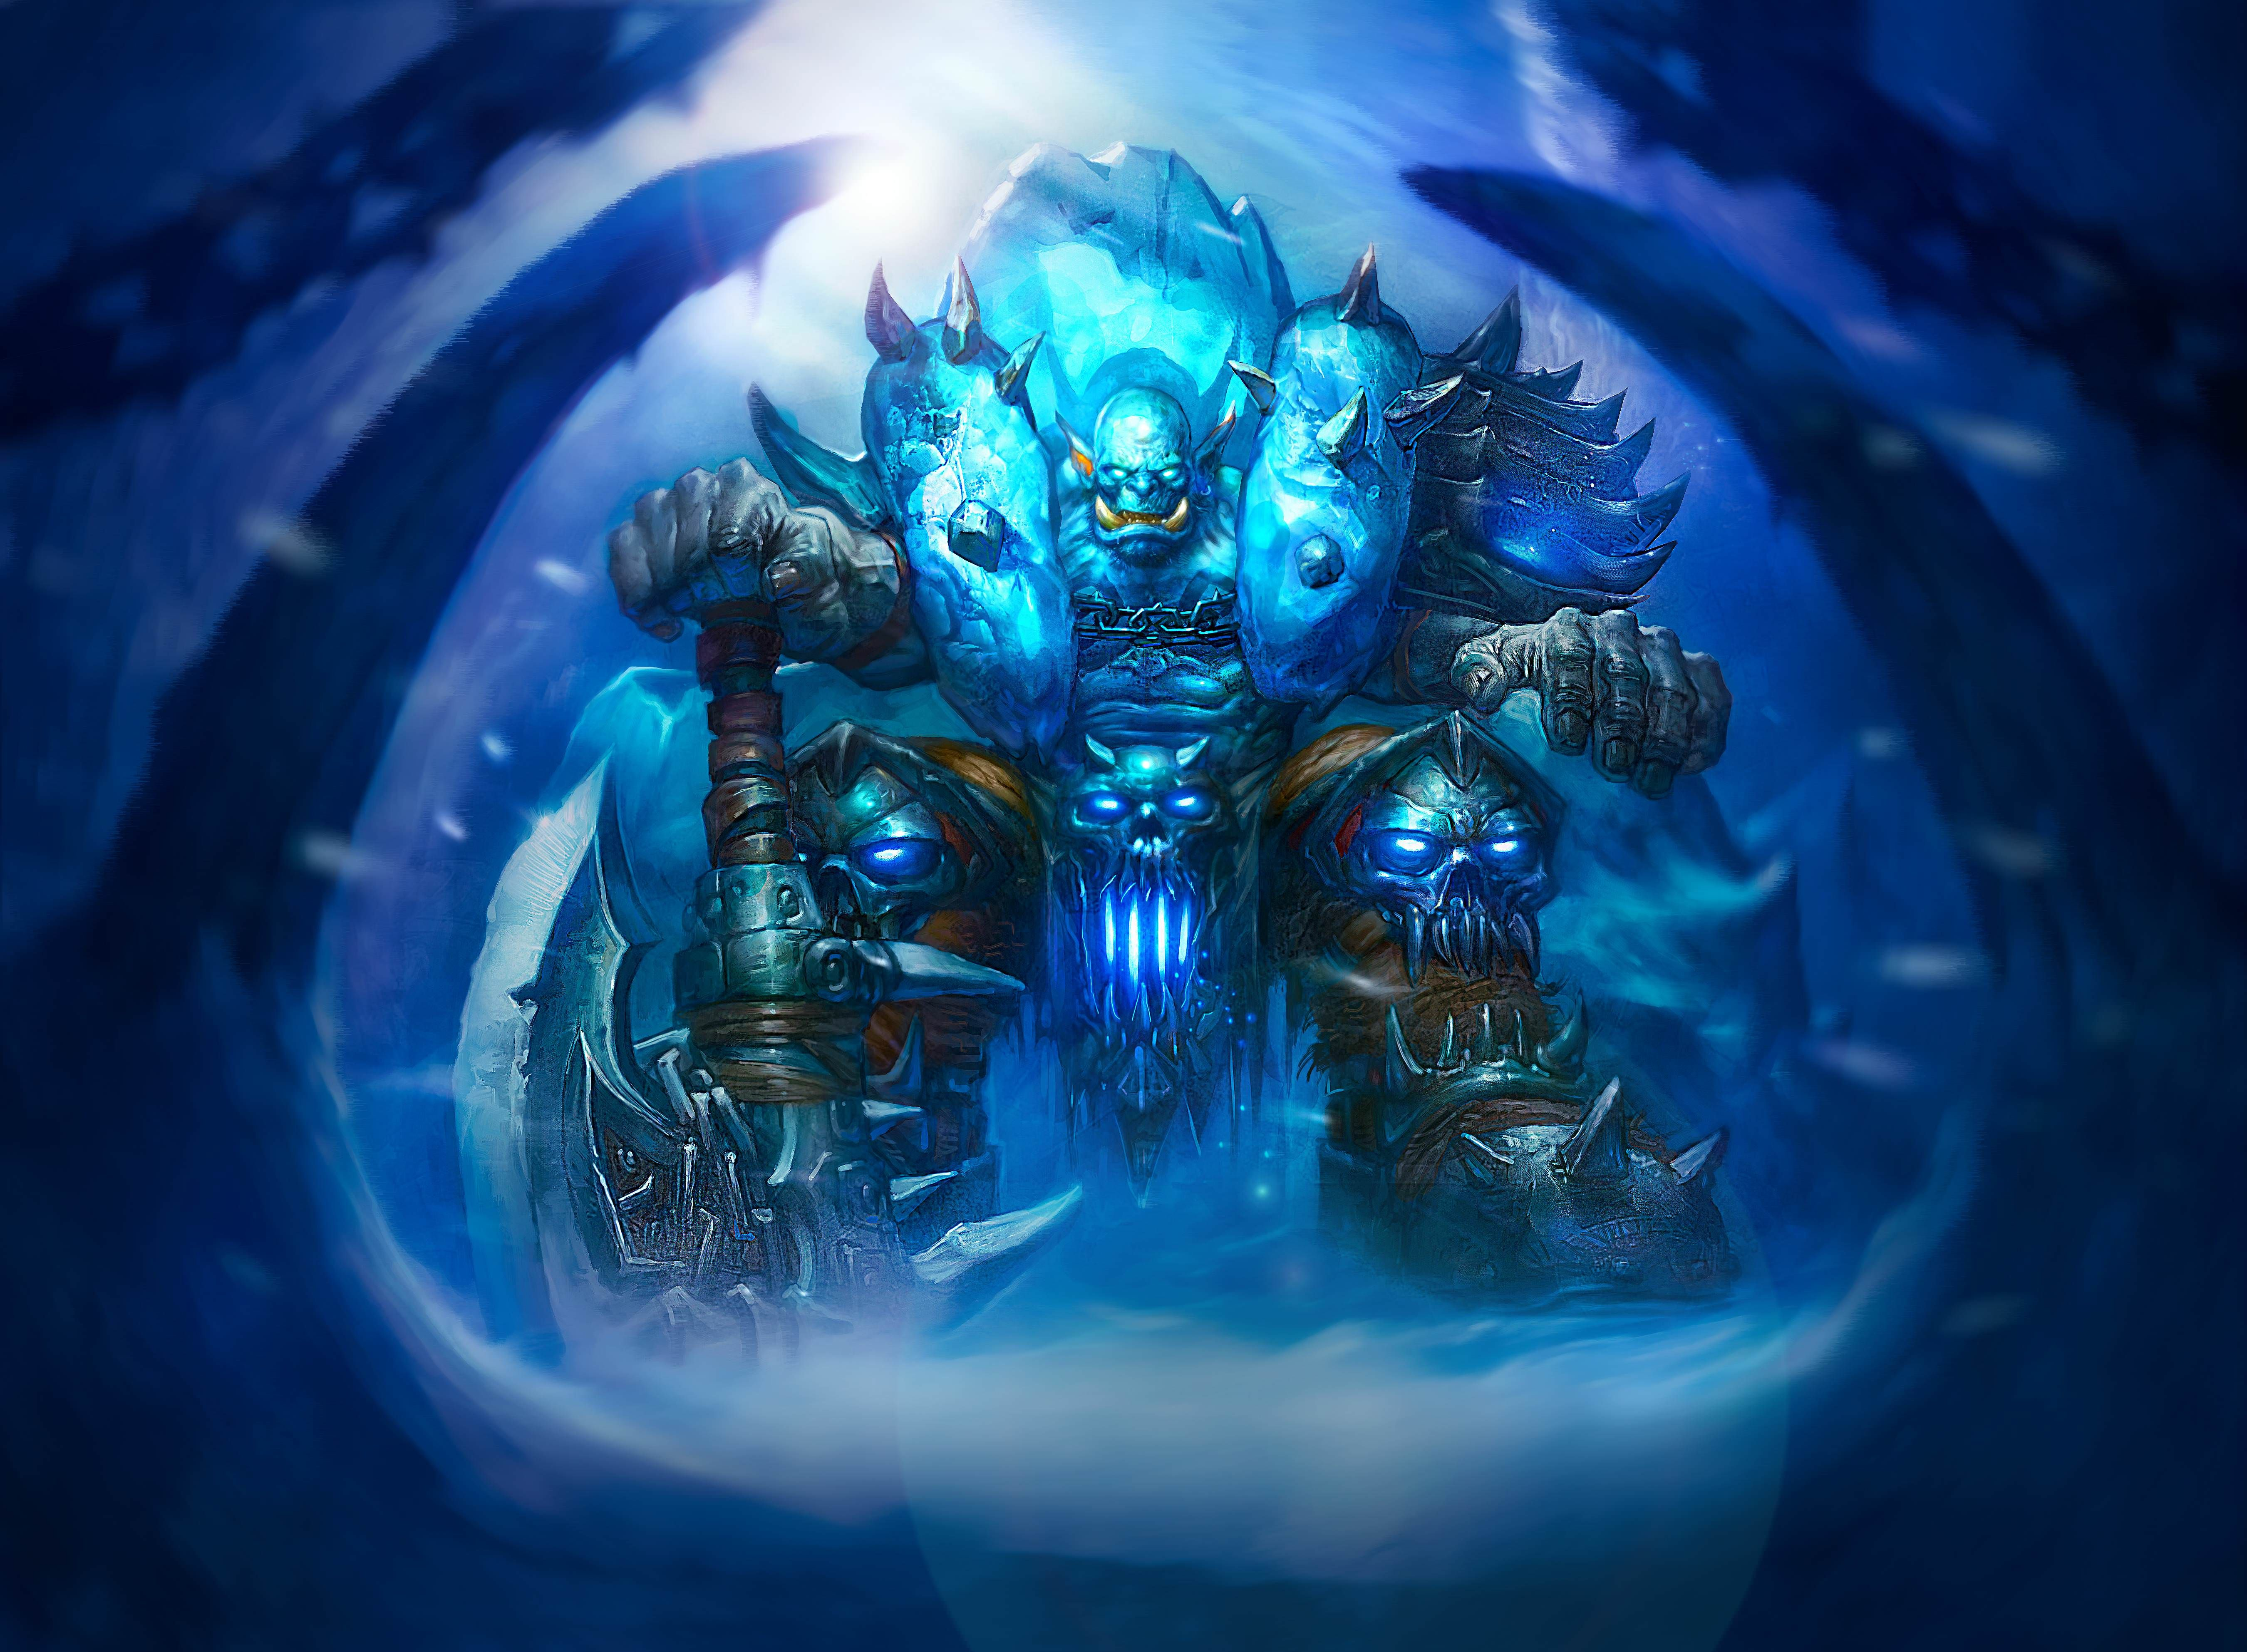 All 9 Dk Heroes Refined Wallpapers Album World Of Warcraft World Of Warcraft Wallpaper Warcraft World of warcraft death knight art